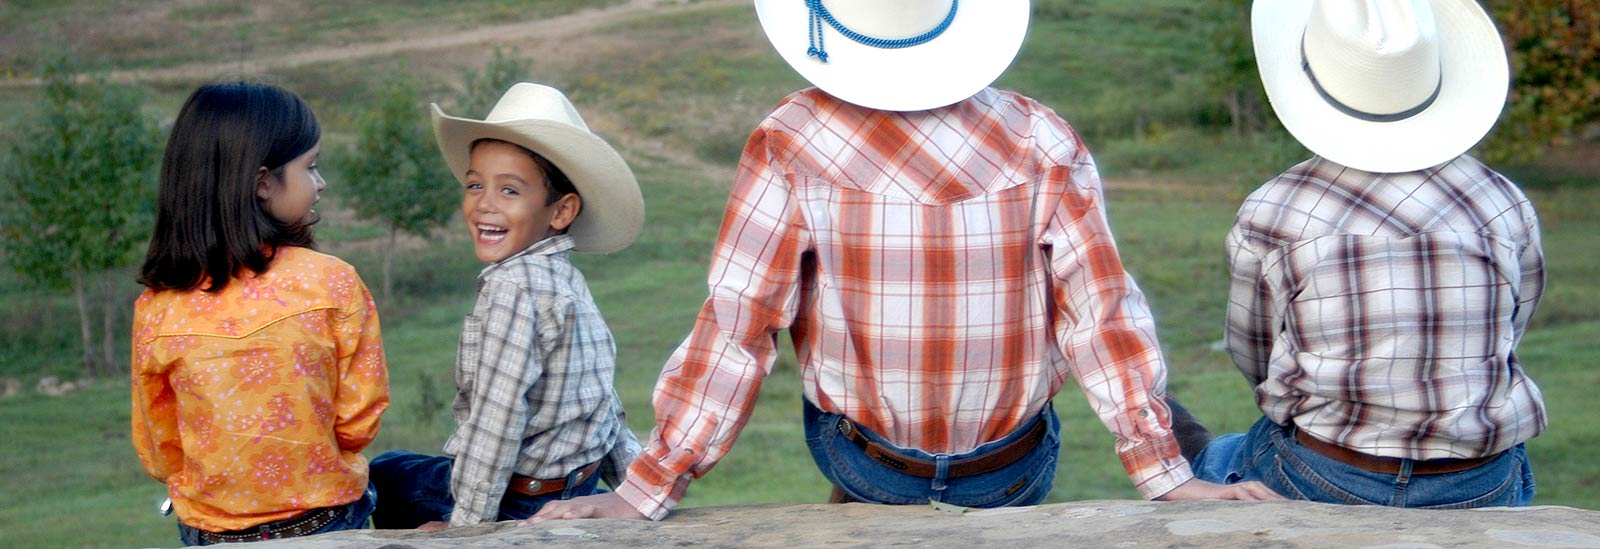 Cowboy kids with backs to camera